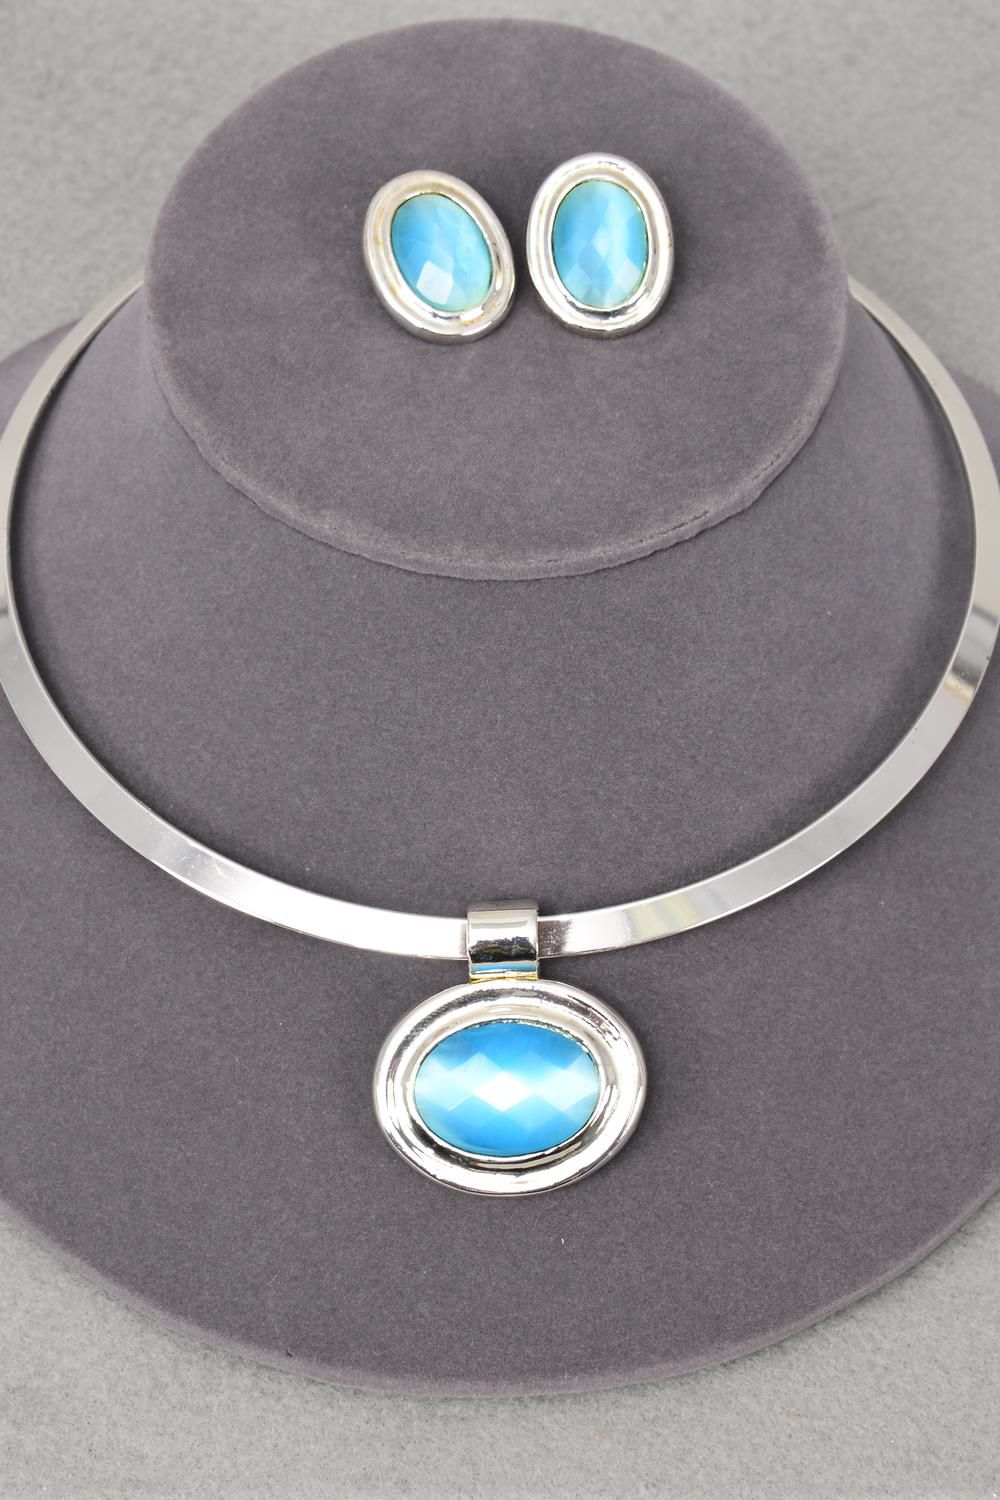 Necklace Sets Choker Blue Cateye Oval Pendant Post/Sets **Post** Blue,Display Card & OPP Bag & UPC Code